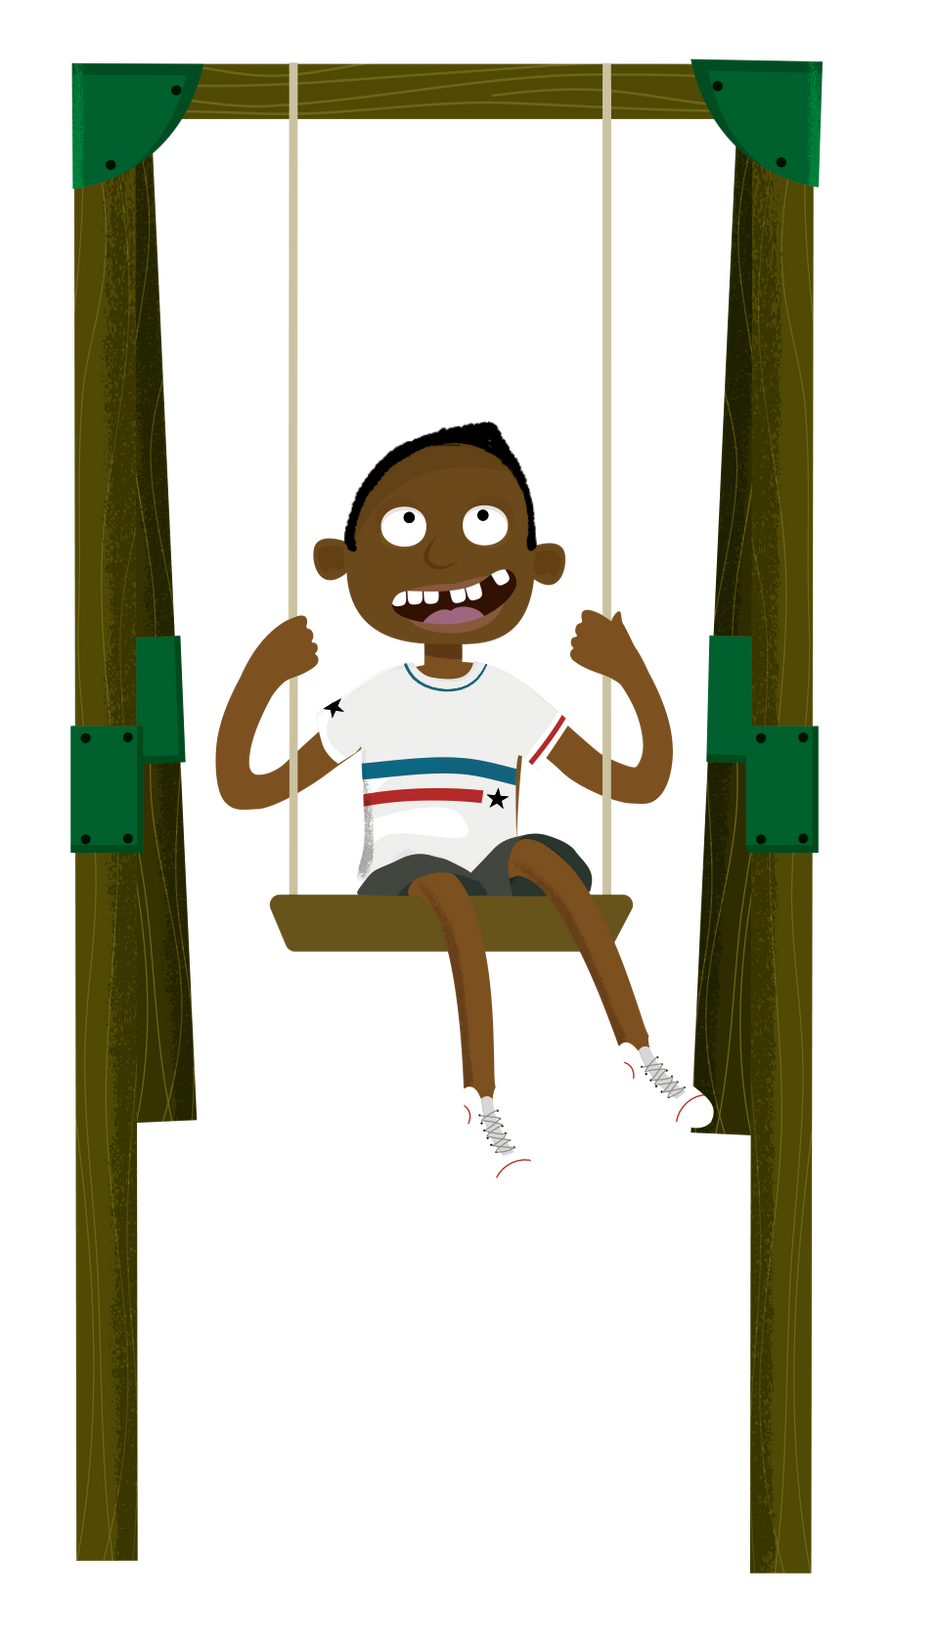 Boy-on-swing.png